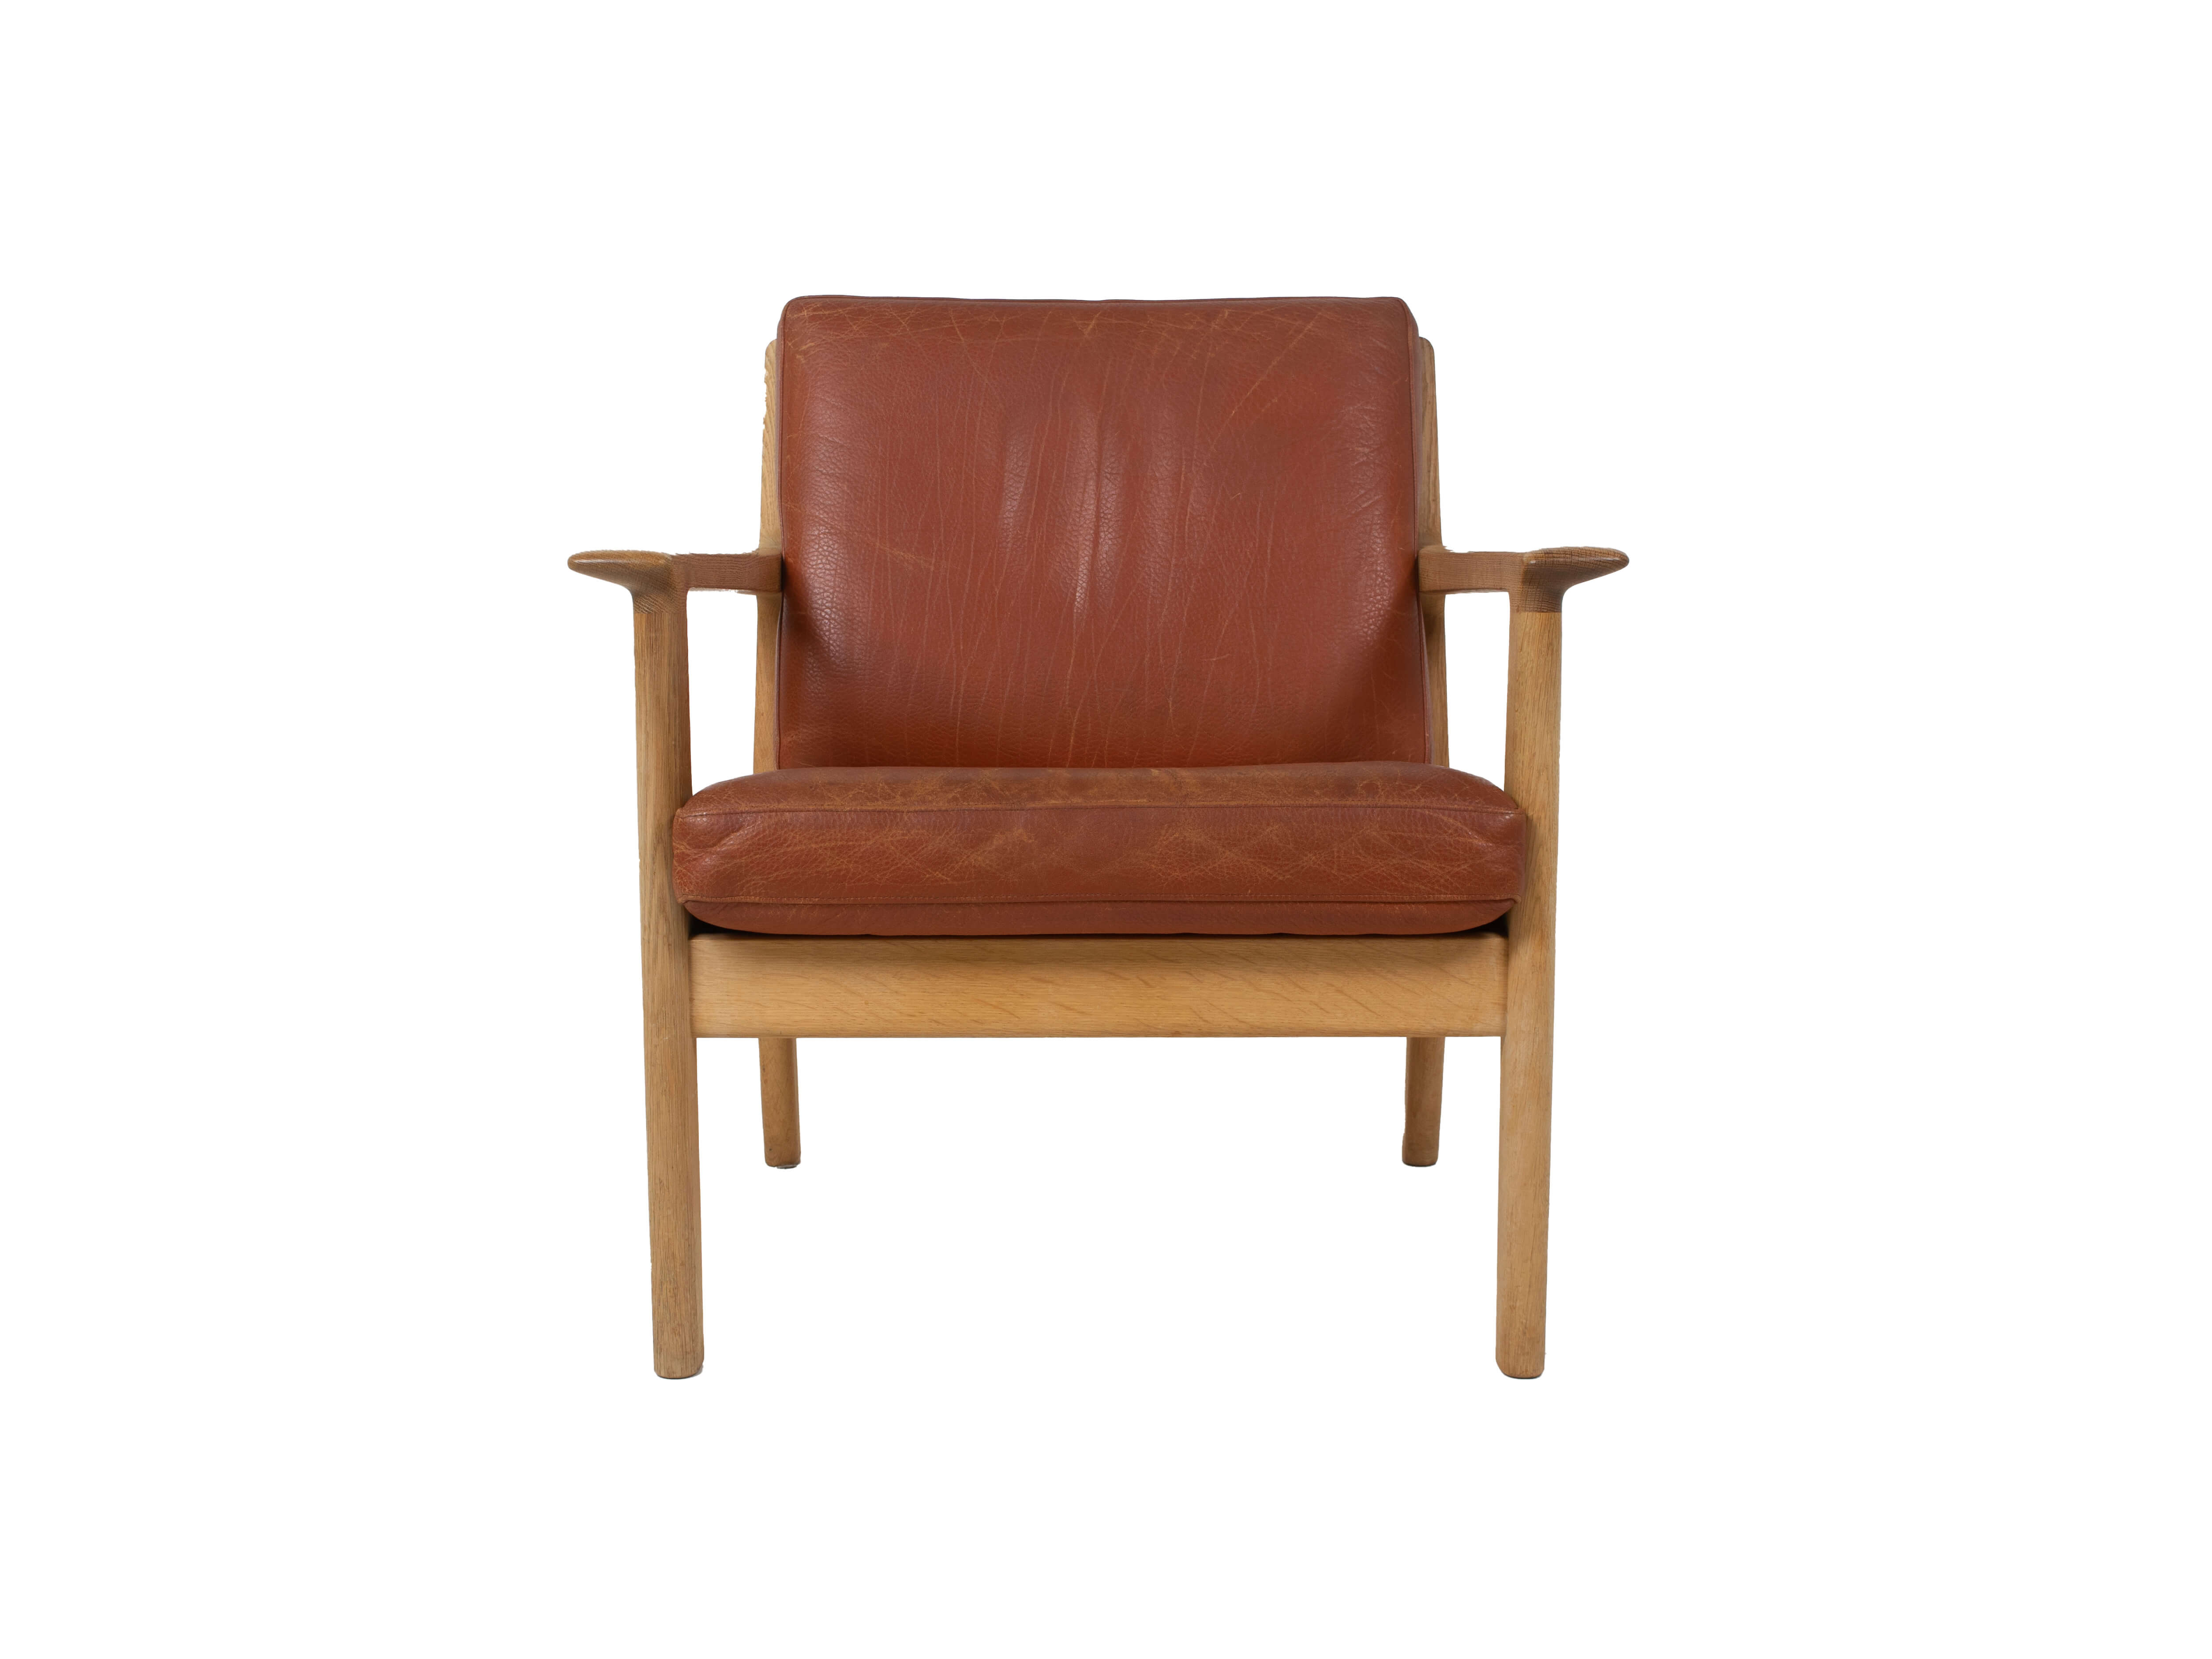 Front view Hans Wegner Arm Chair by Getama Model 265 in Oak and Leather, 1987